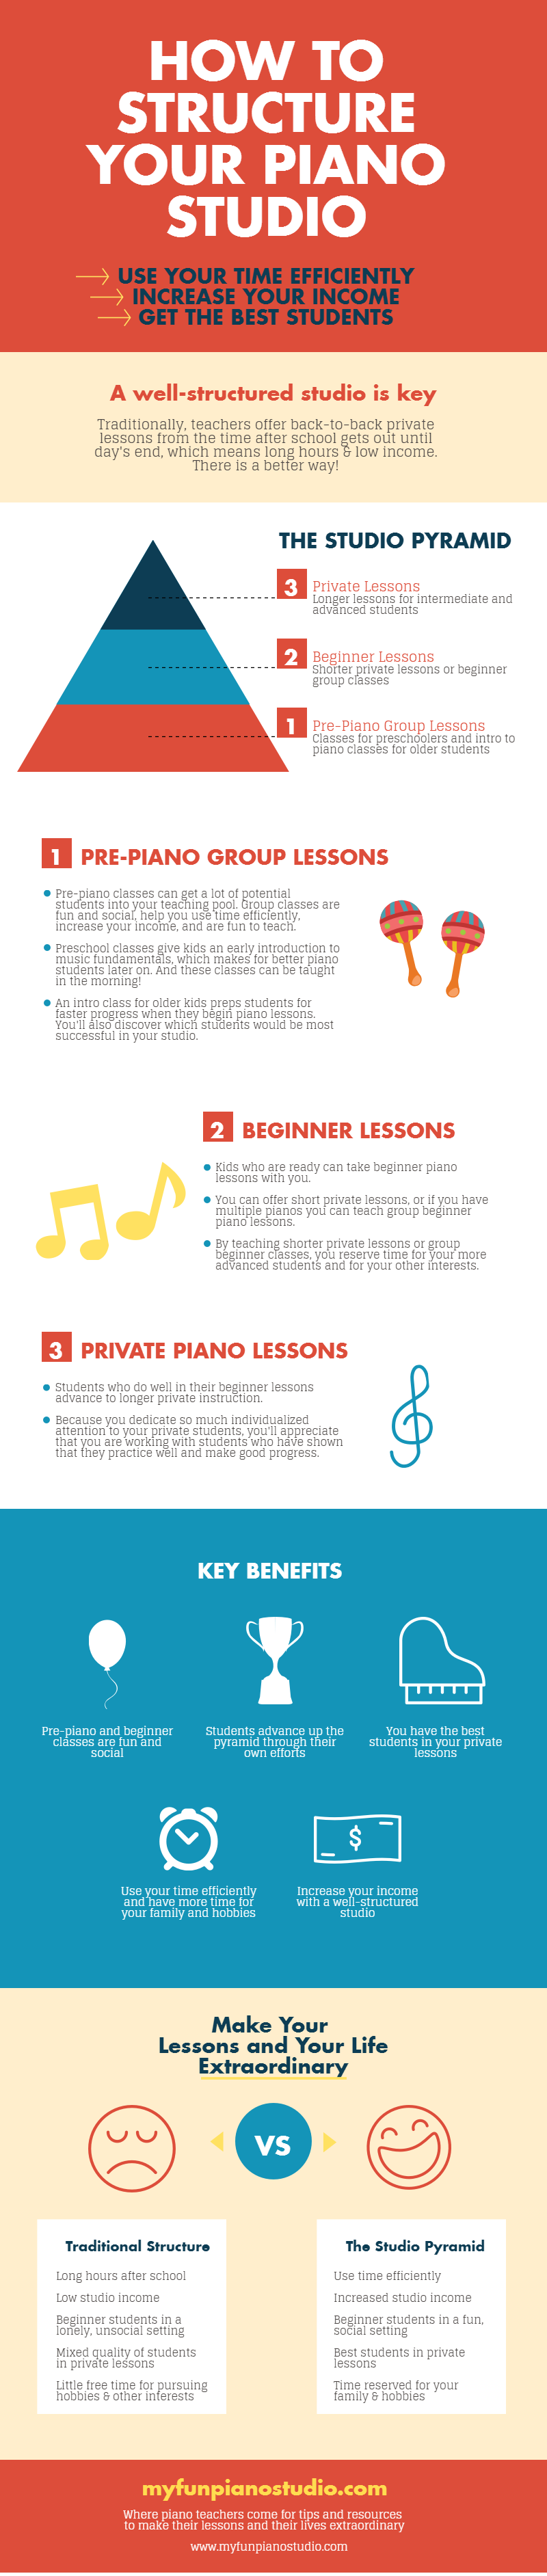 how-to-structure-your-piano-studio